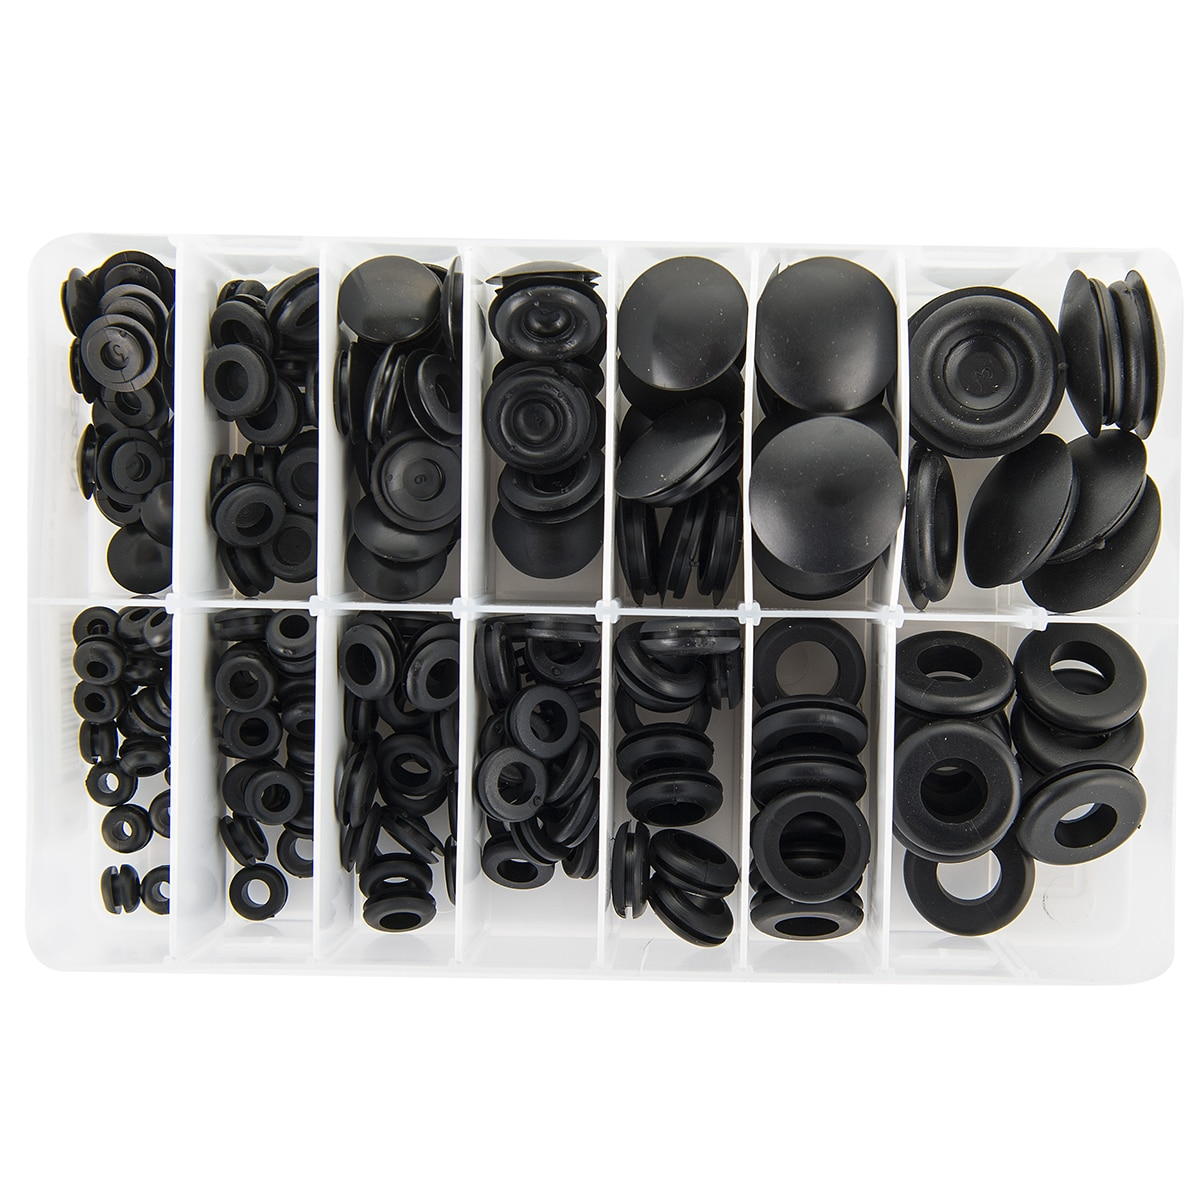 Box of Blanking and Wiring Grommets (240 pieces) Wiring Grommets on